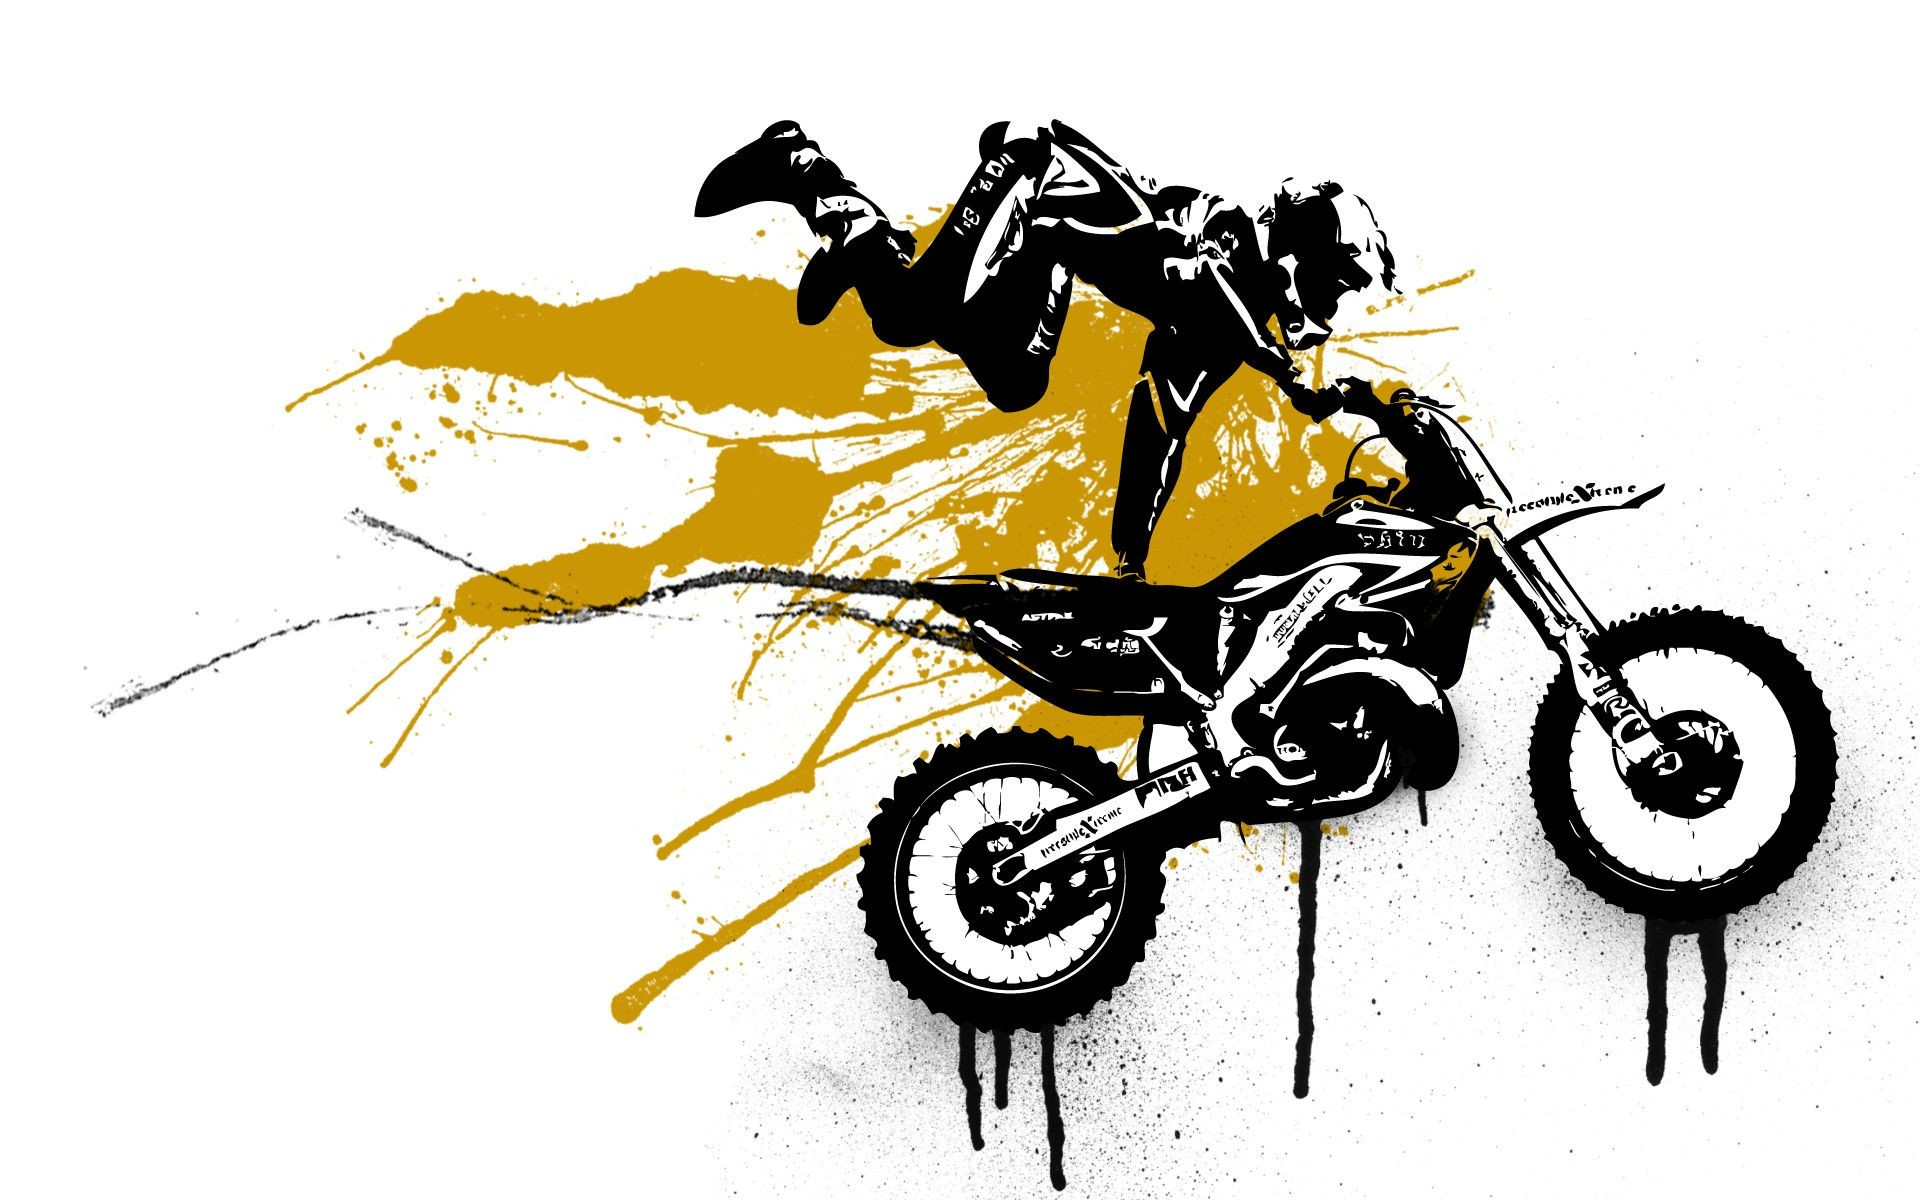 Image For Freestyle Motocross Wallpaper For Iphone 1920x1200 Wallpaper Teahub Io